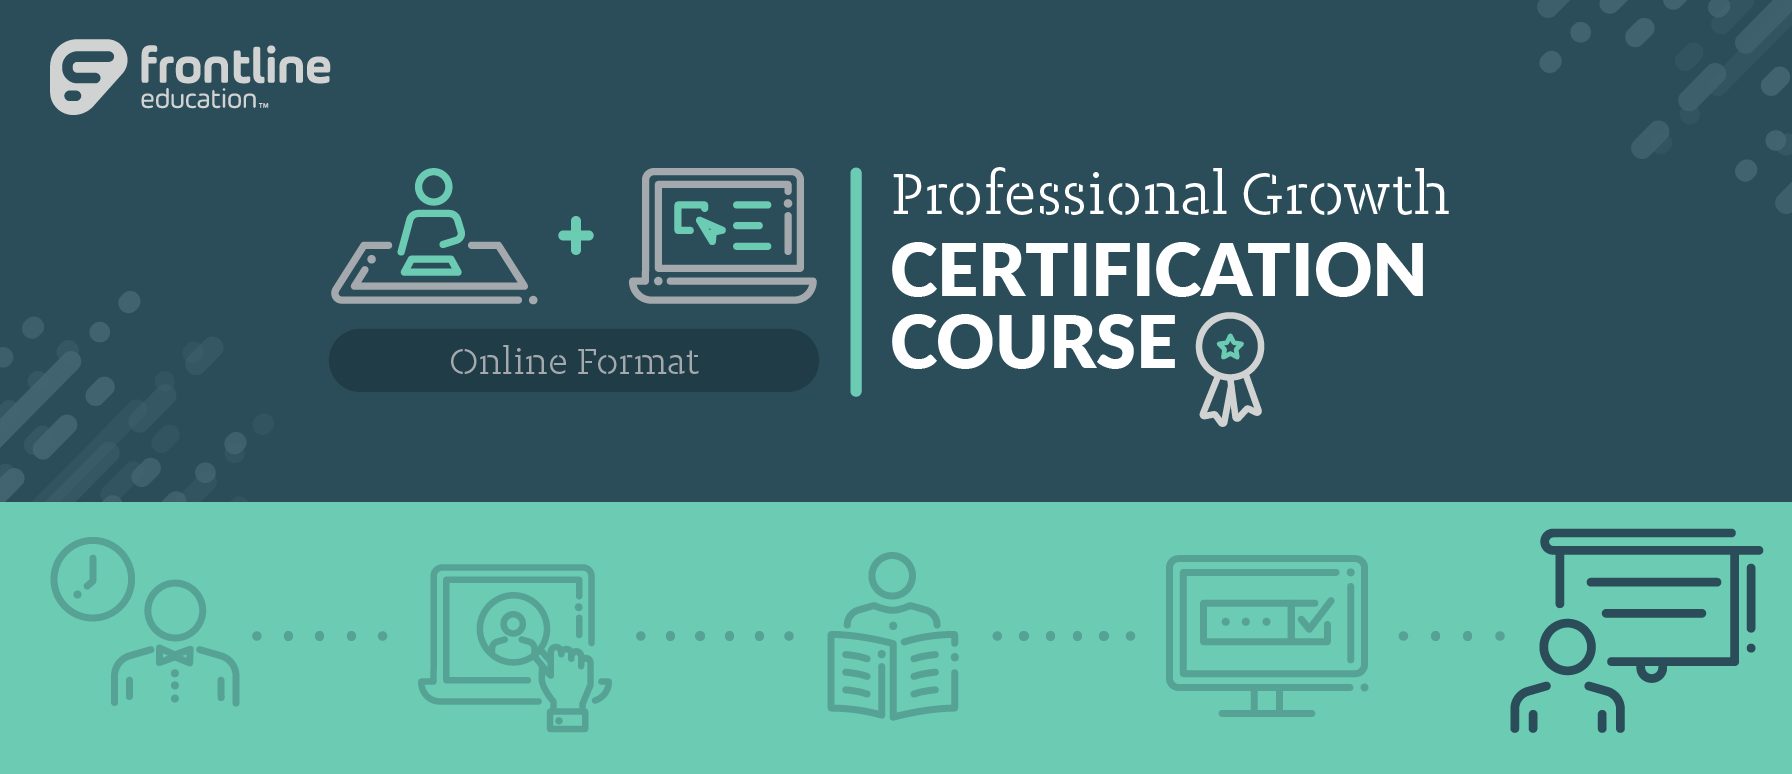 Professional Learning Management Facilitated Online Certification Course - Jan/Feb 2020